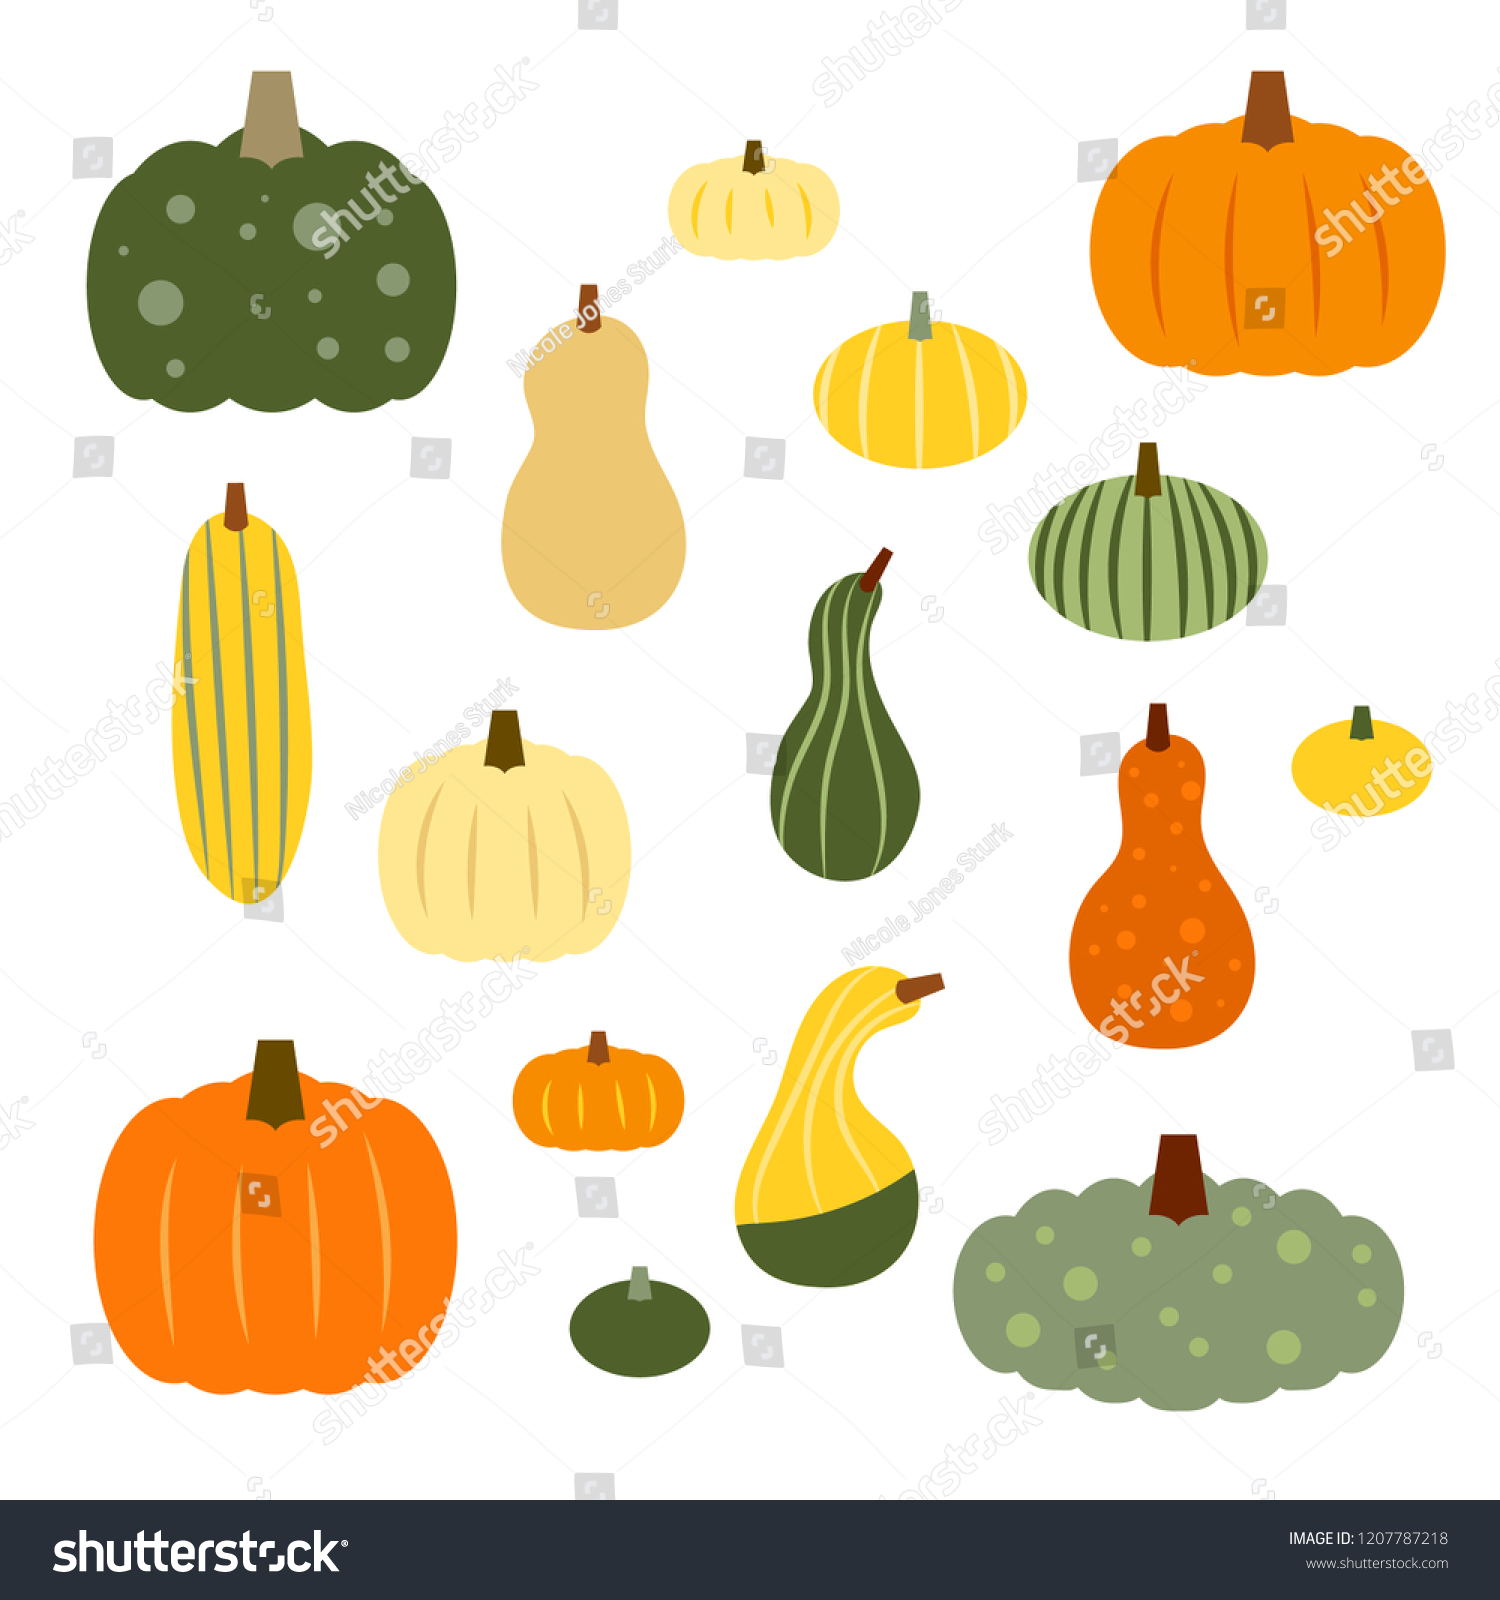 stock-vector-set-of-colorful-vector-autumn-gourds-in-various-shapes-and-sizes-1207787218.jpg